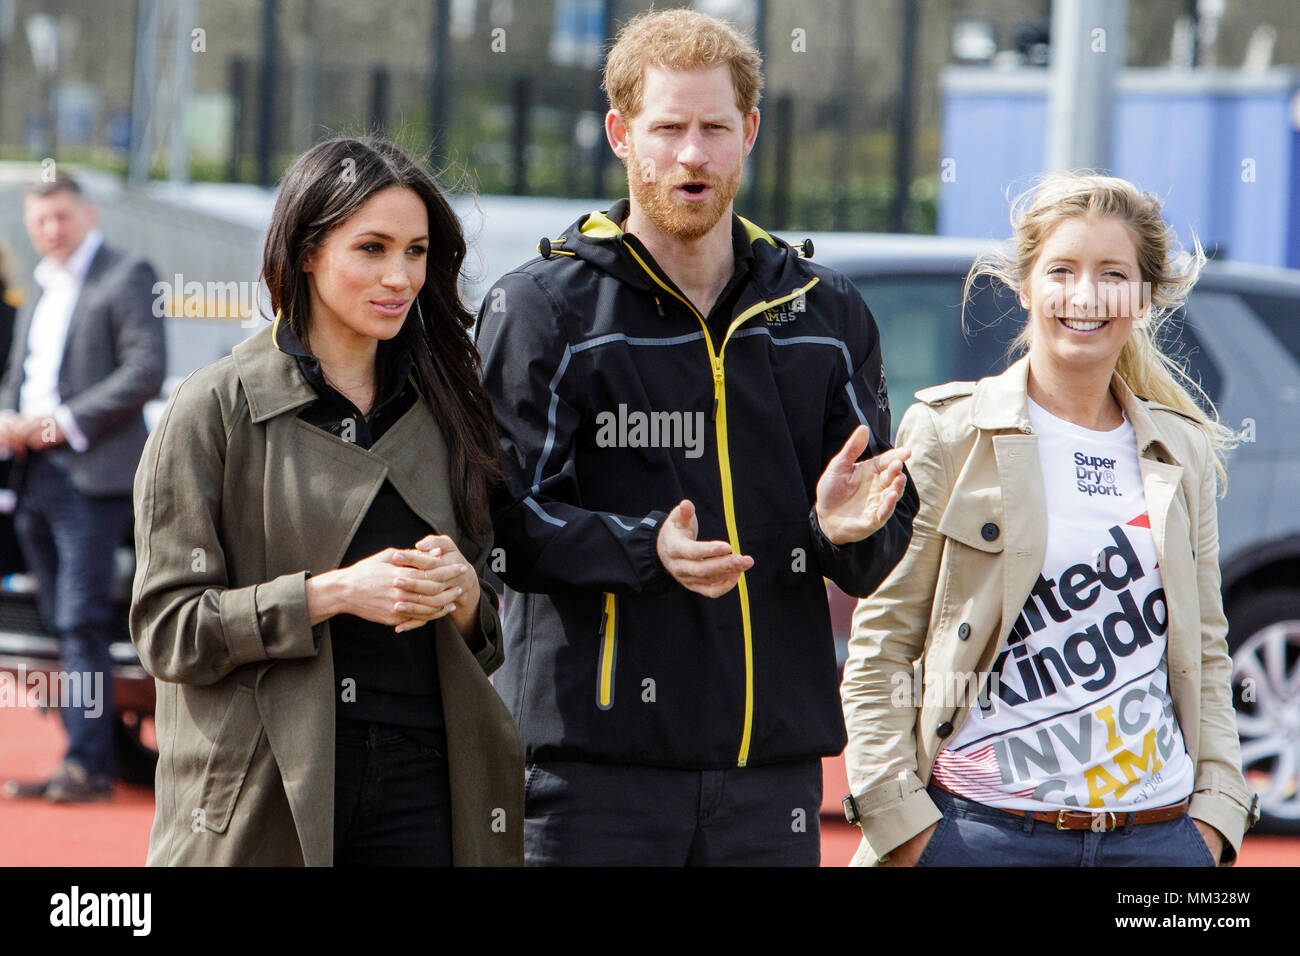 bath-uk-60418prince-harry-and-meghan-markle-are-pictured-at-the-university-of-bath-as-they-attend-the-uk-team-trials-for-the-2018-invictus-games-MM328W.jpg